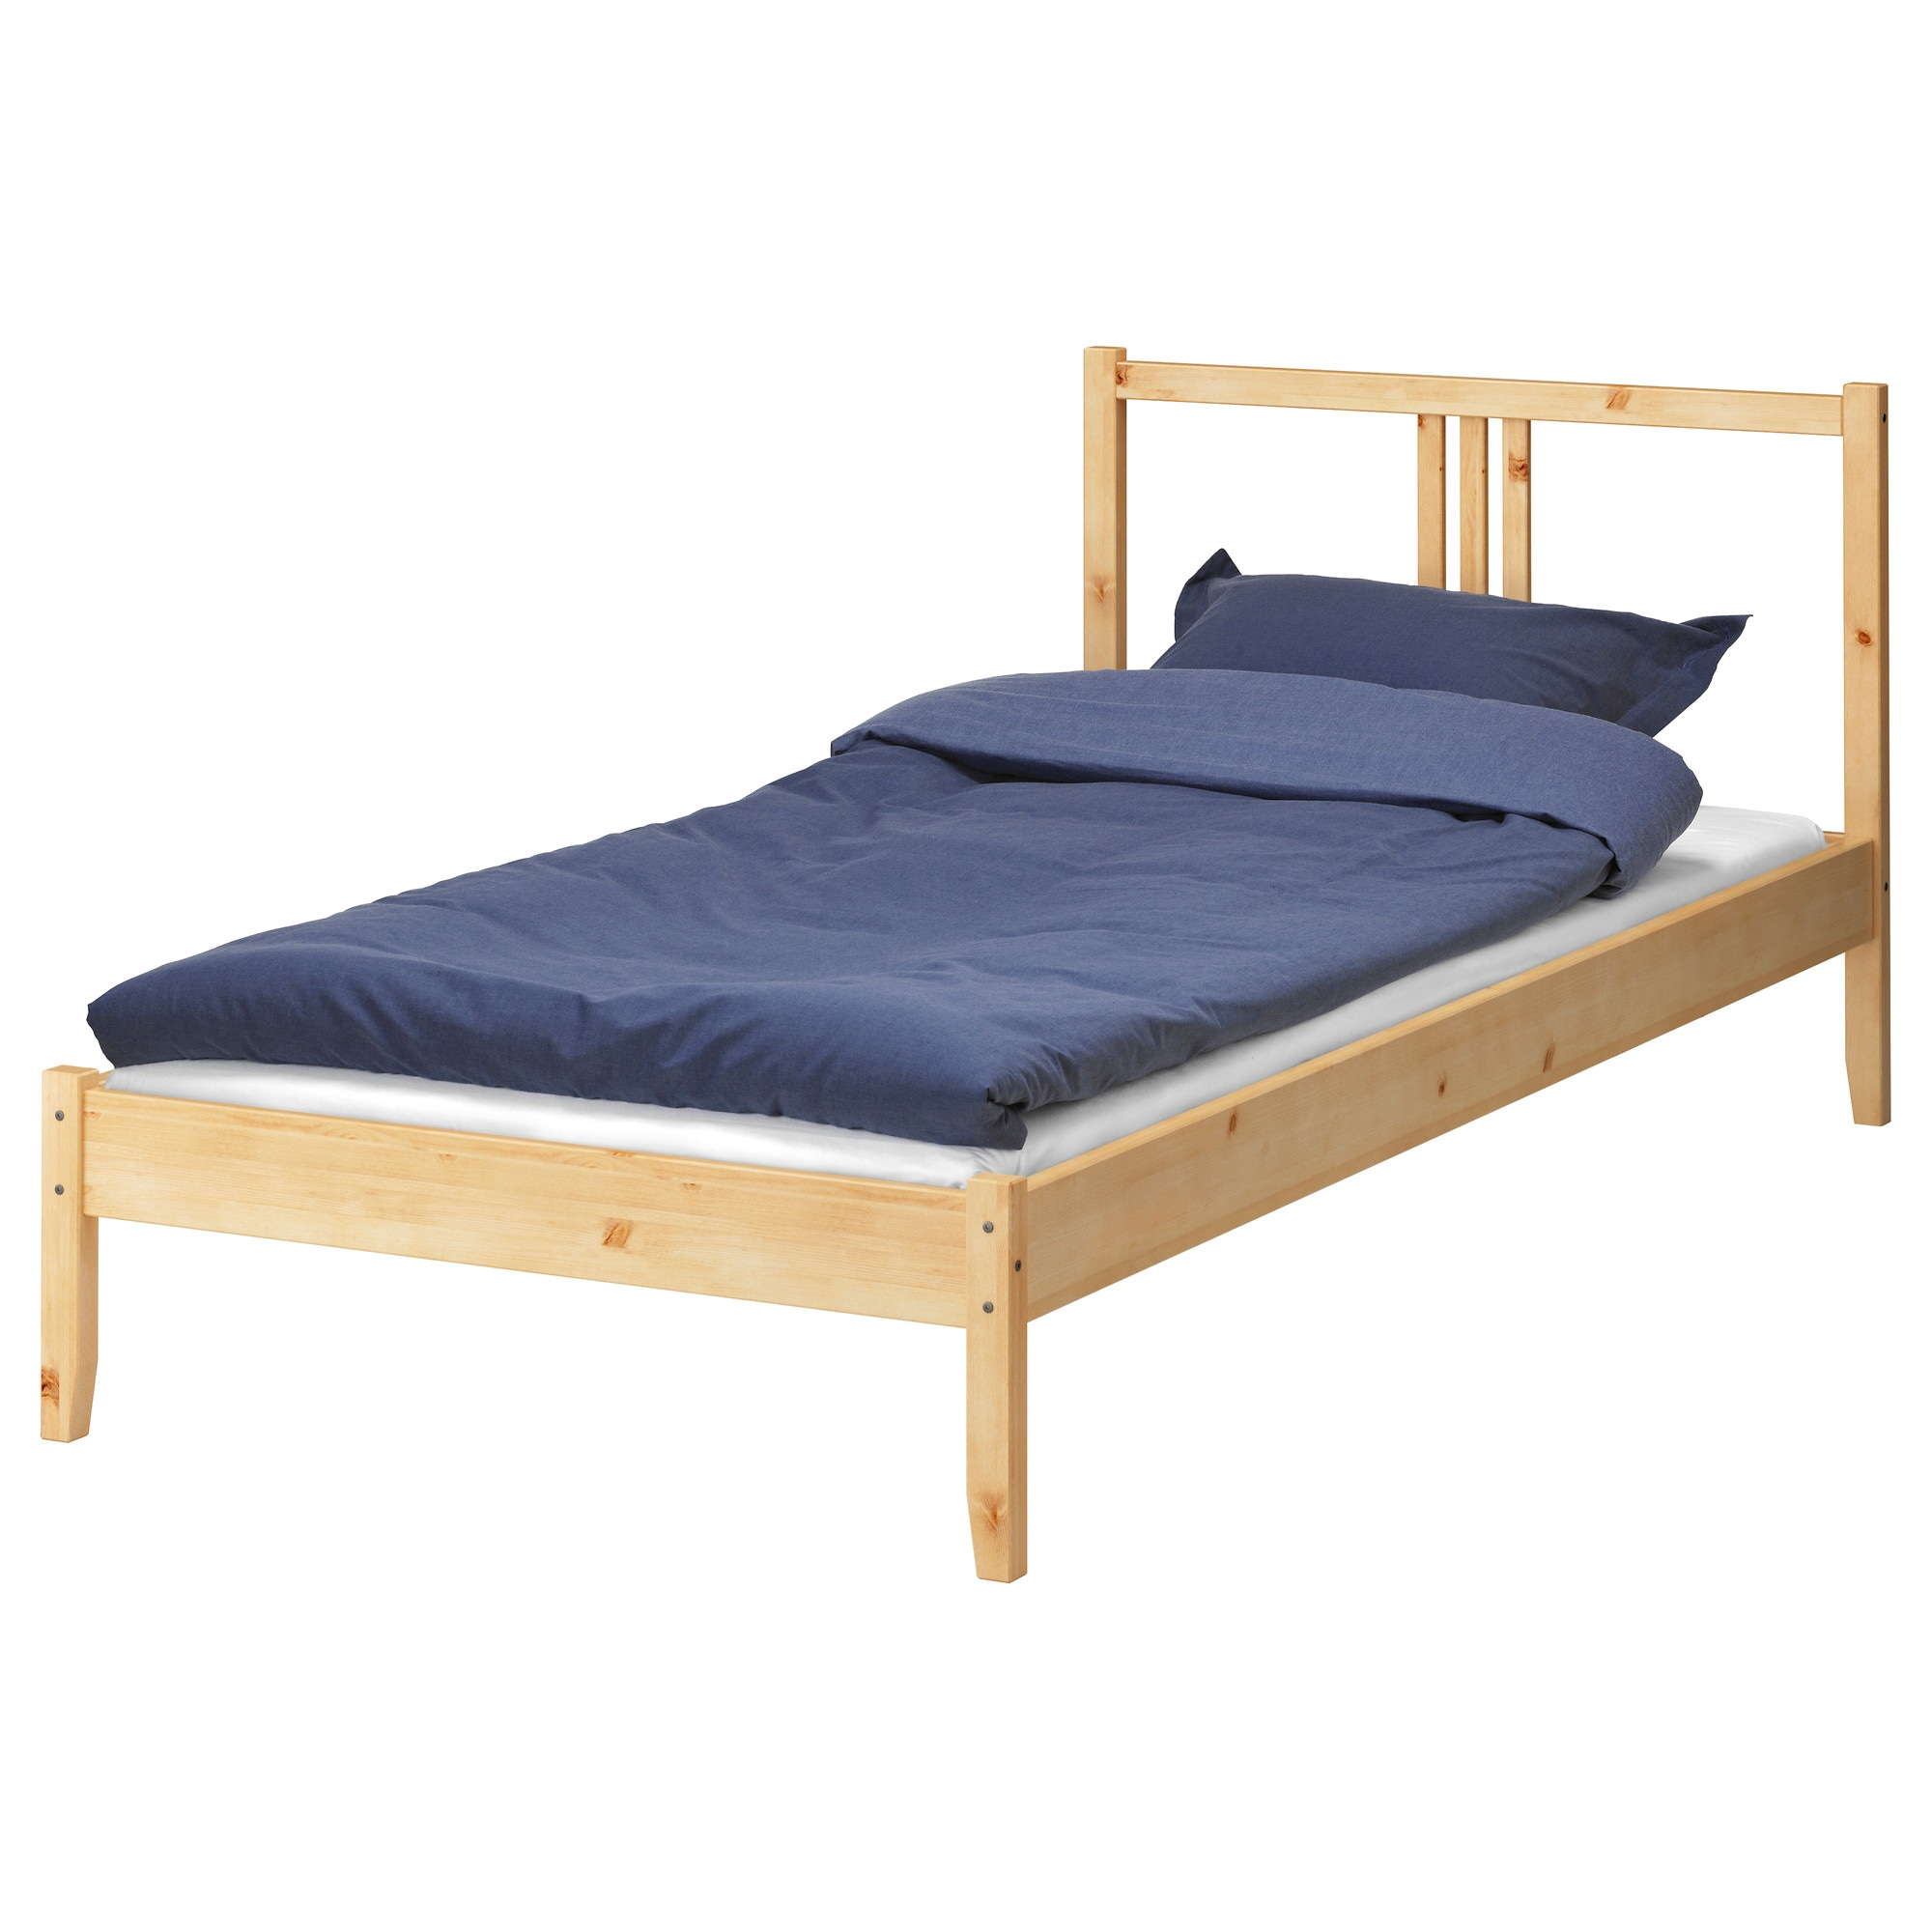 Uncategorized Bed Frames From Ikea fjellse bed frame ikea